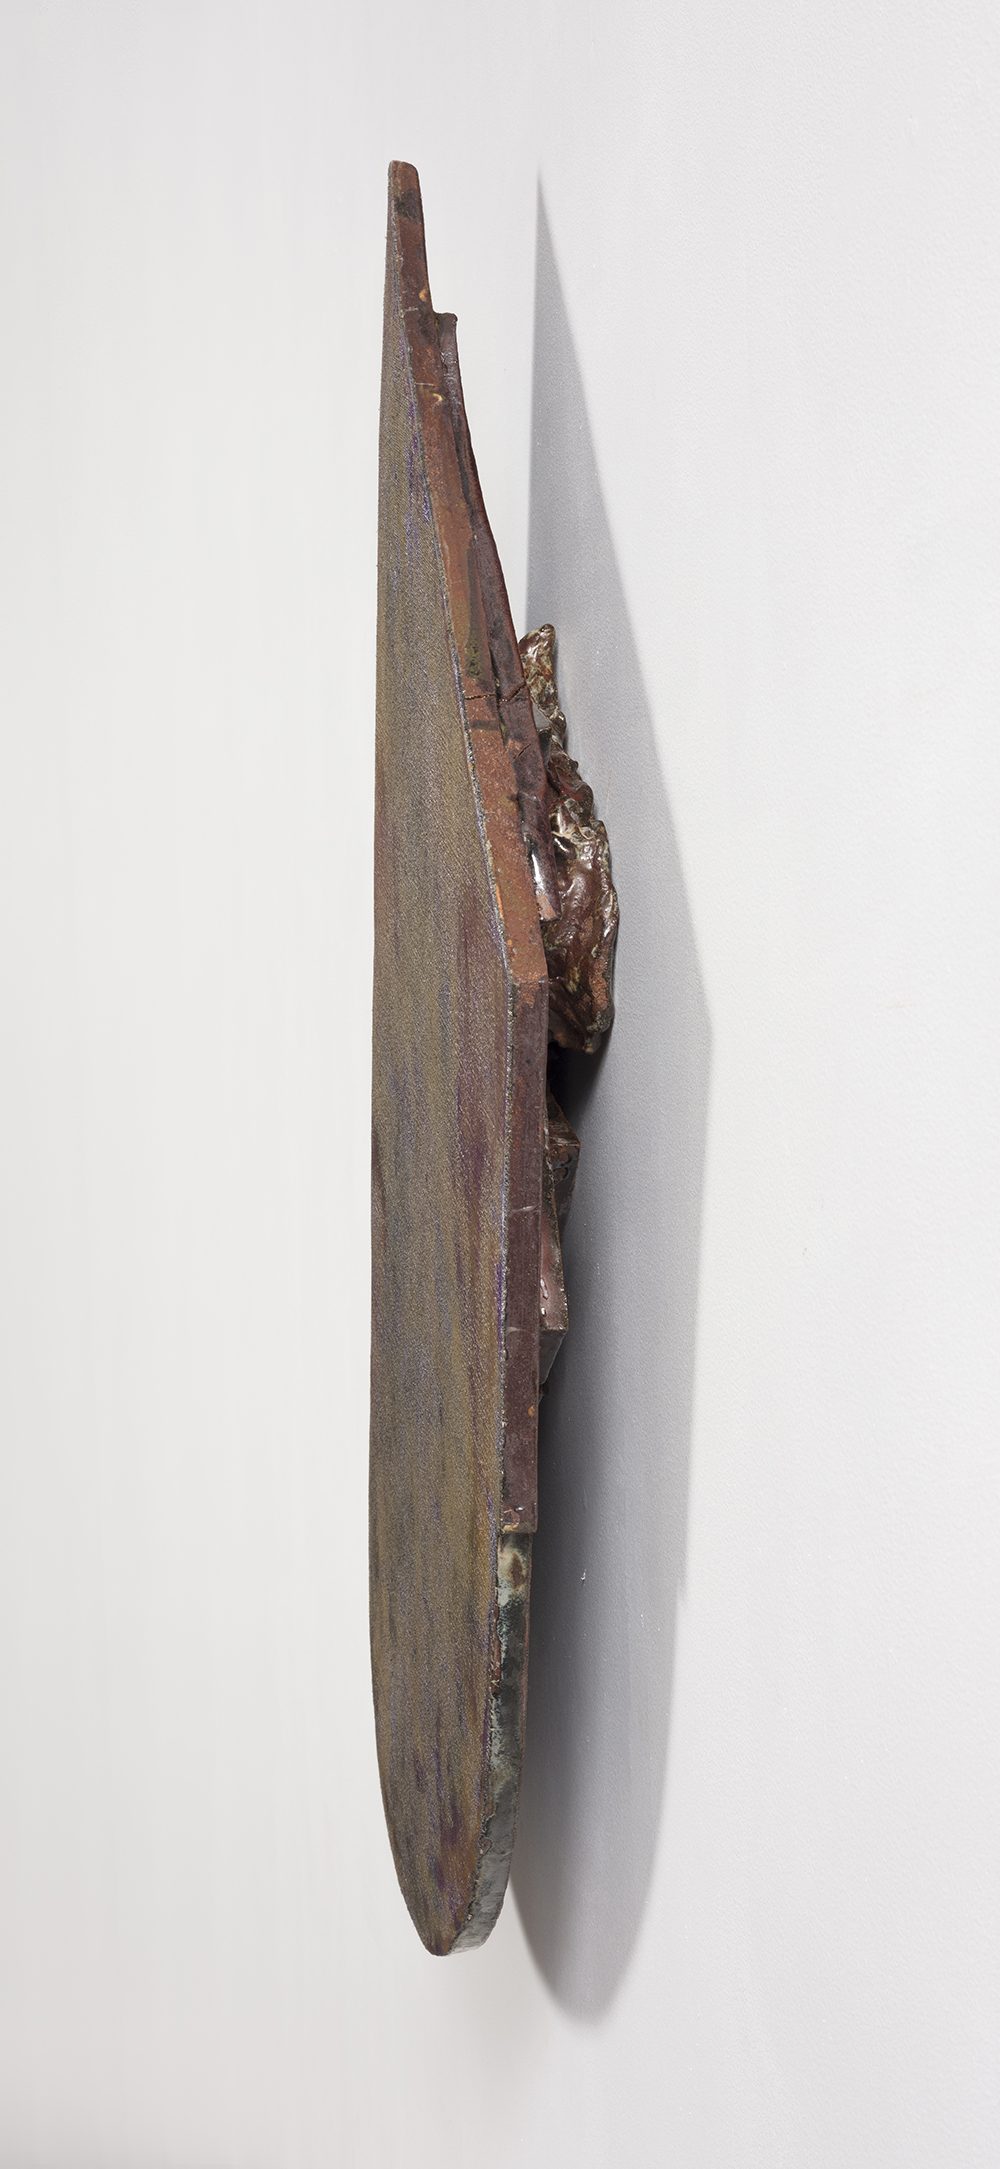 Graham Collins. <i>Social Air Gap </i>, 2019. Oil and enamel on hemp laid in ceramic, 34 x 18 inches  (86.4 x 45.7 cm)